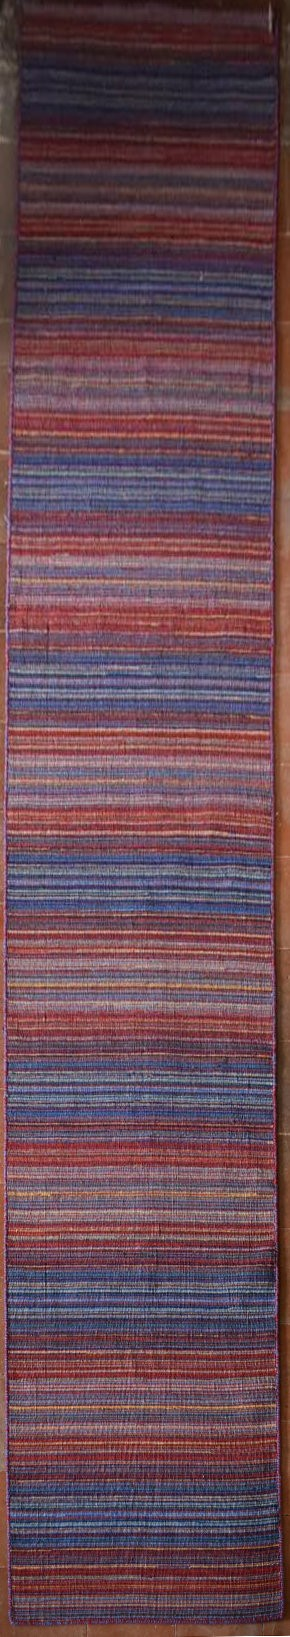 A long modern Kilim runner with bands in various hues of red and blue. L.400xW.70cm